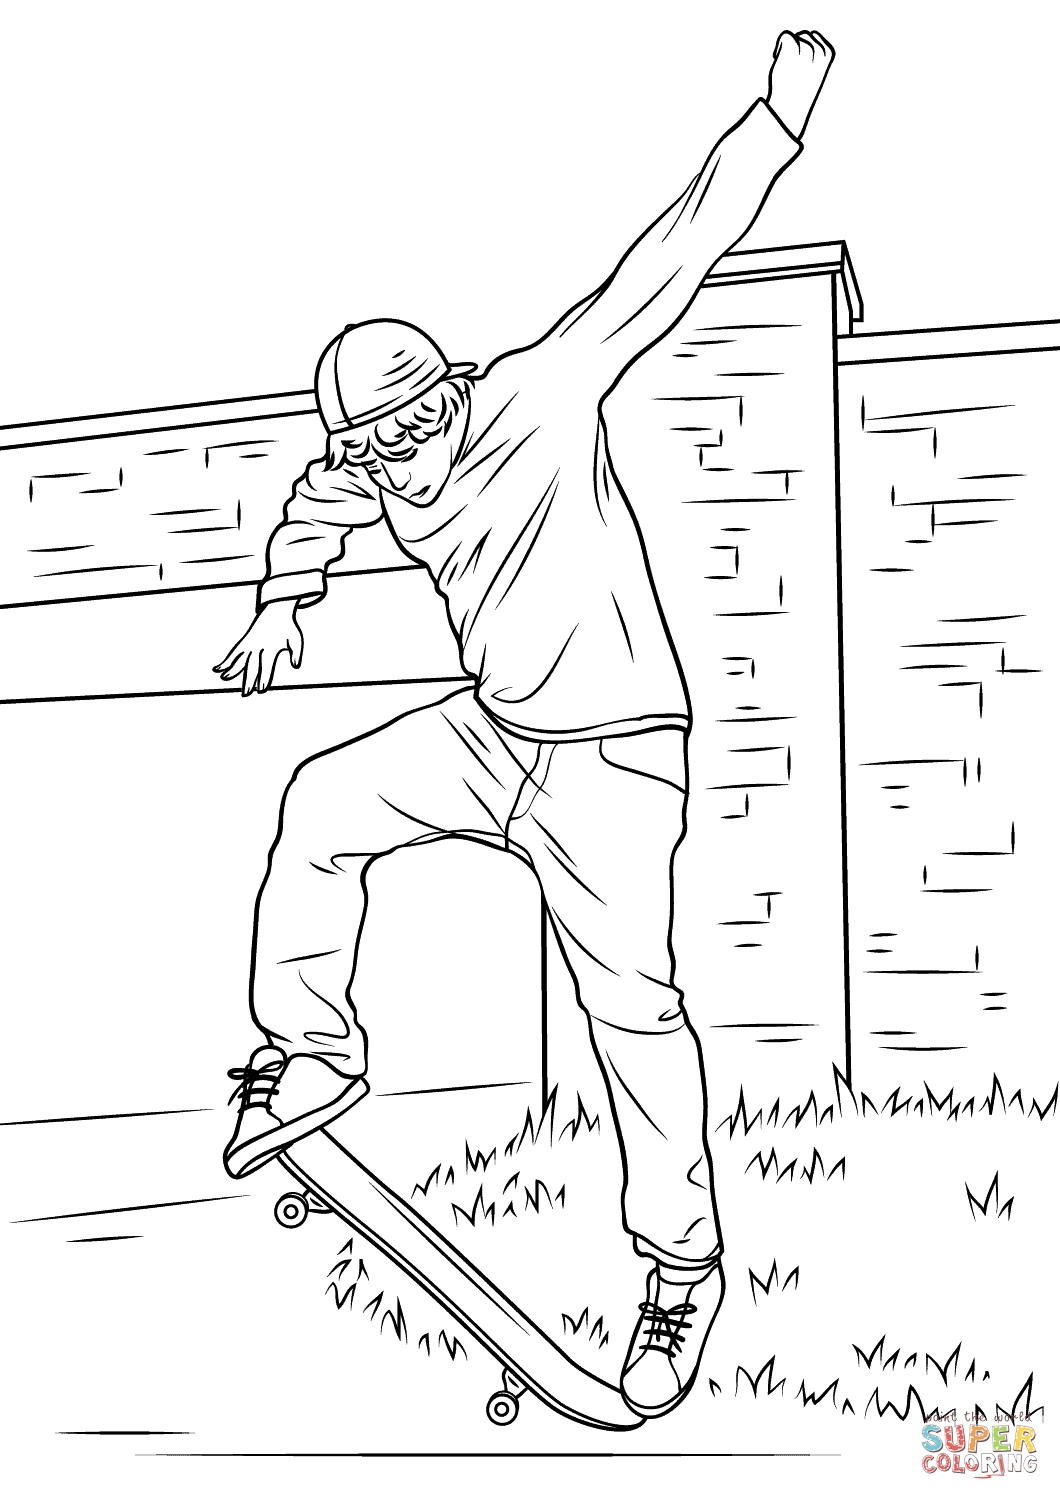 Skating Skateboard Coloring Pages